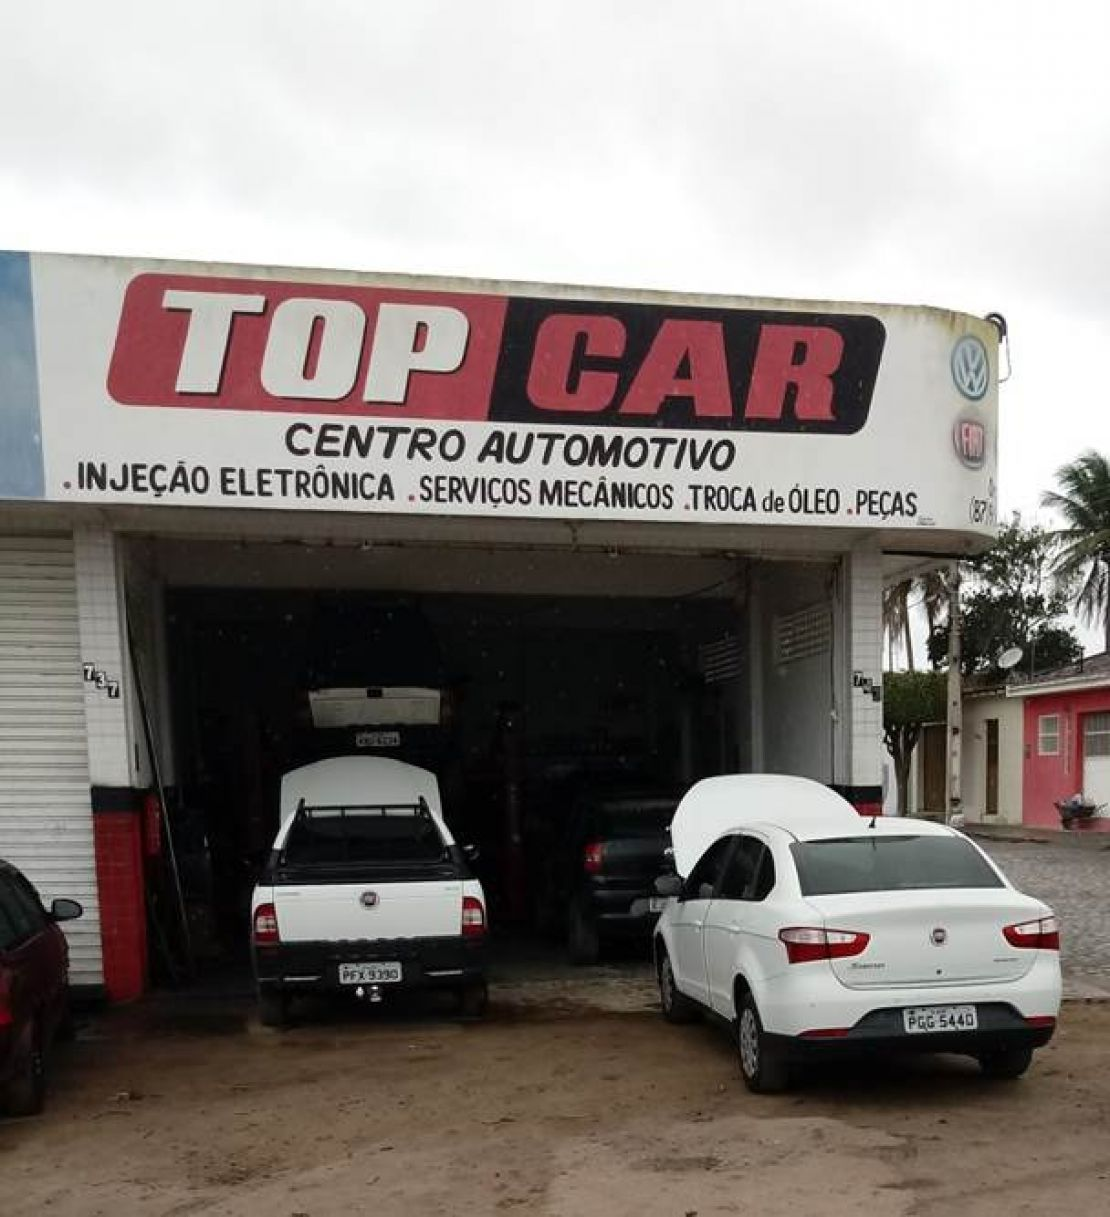 Top Car Centro Automotivo Foto 1